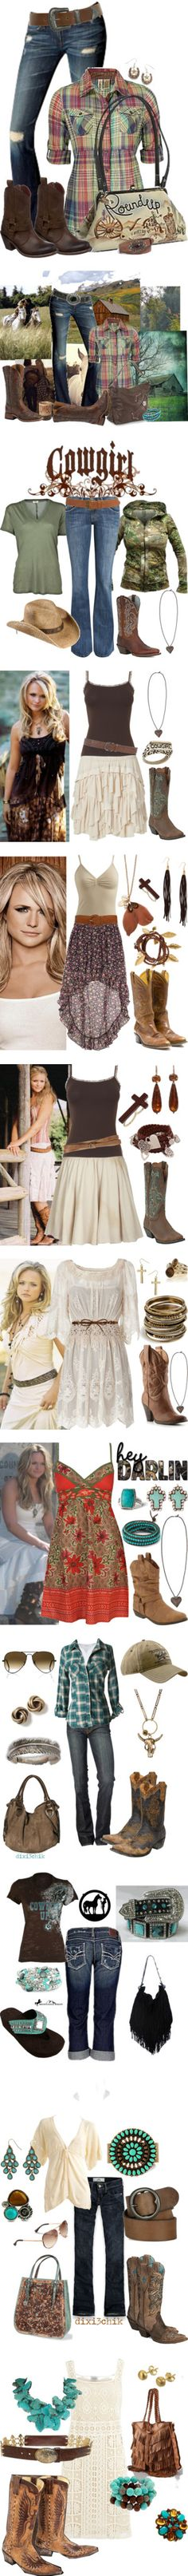 """Country Chic"" by kimscrip on Polyvore"